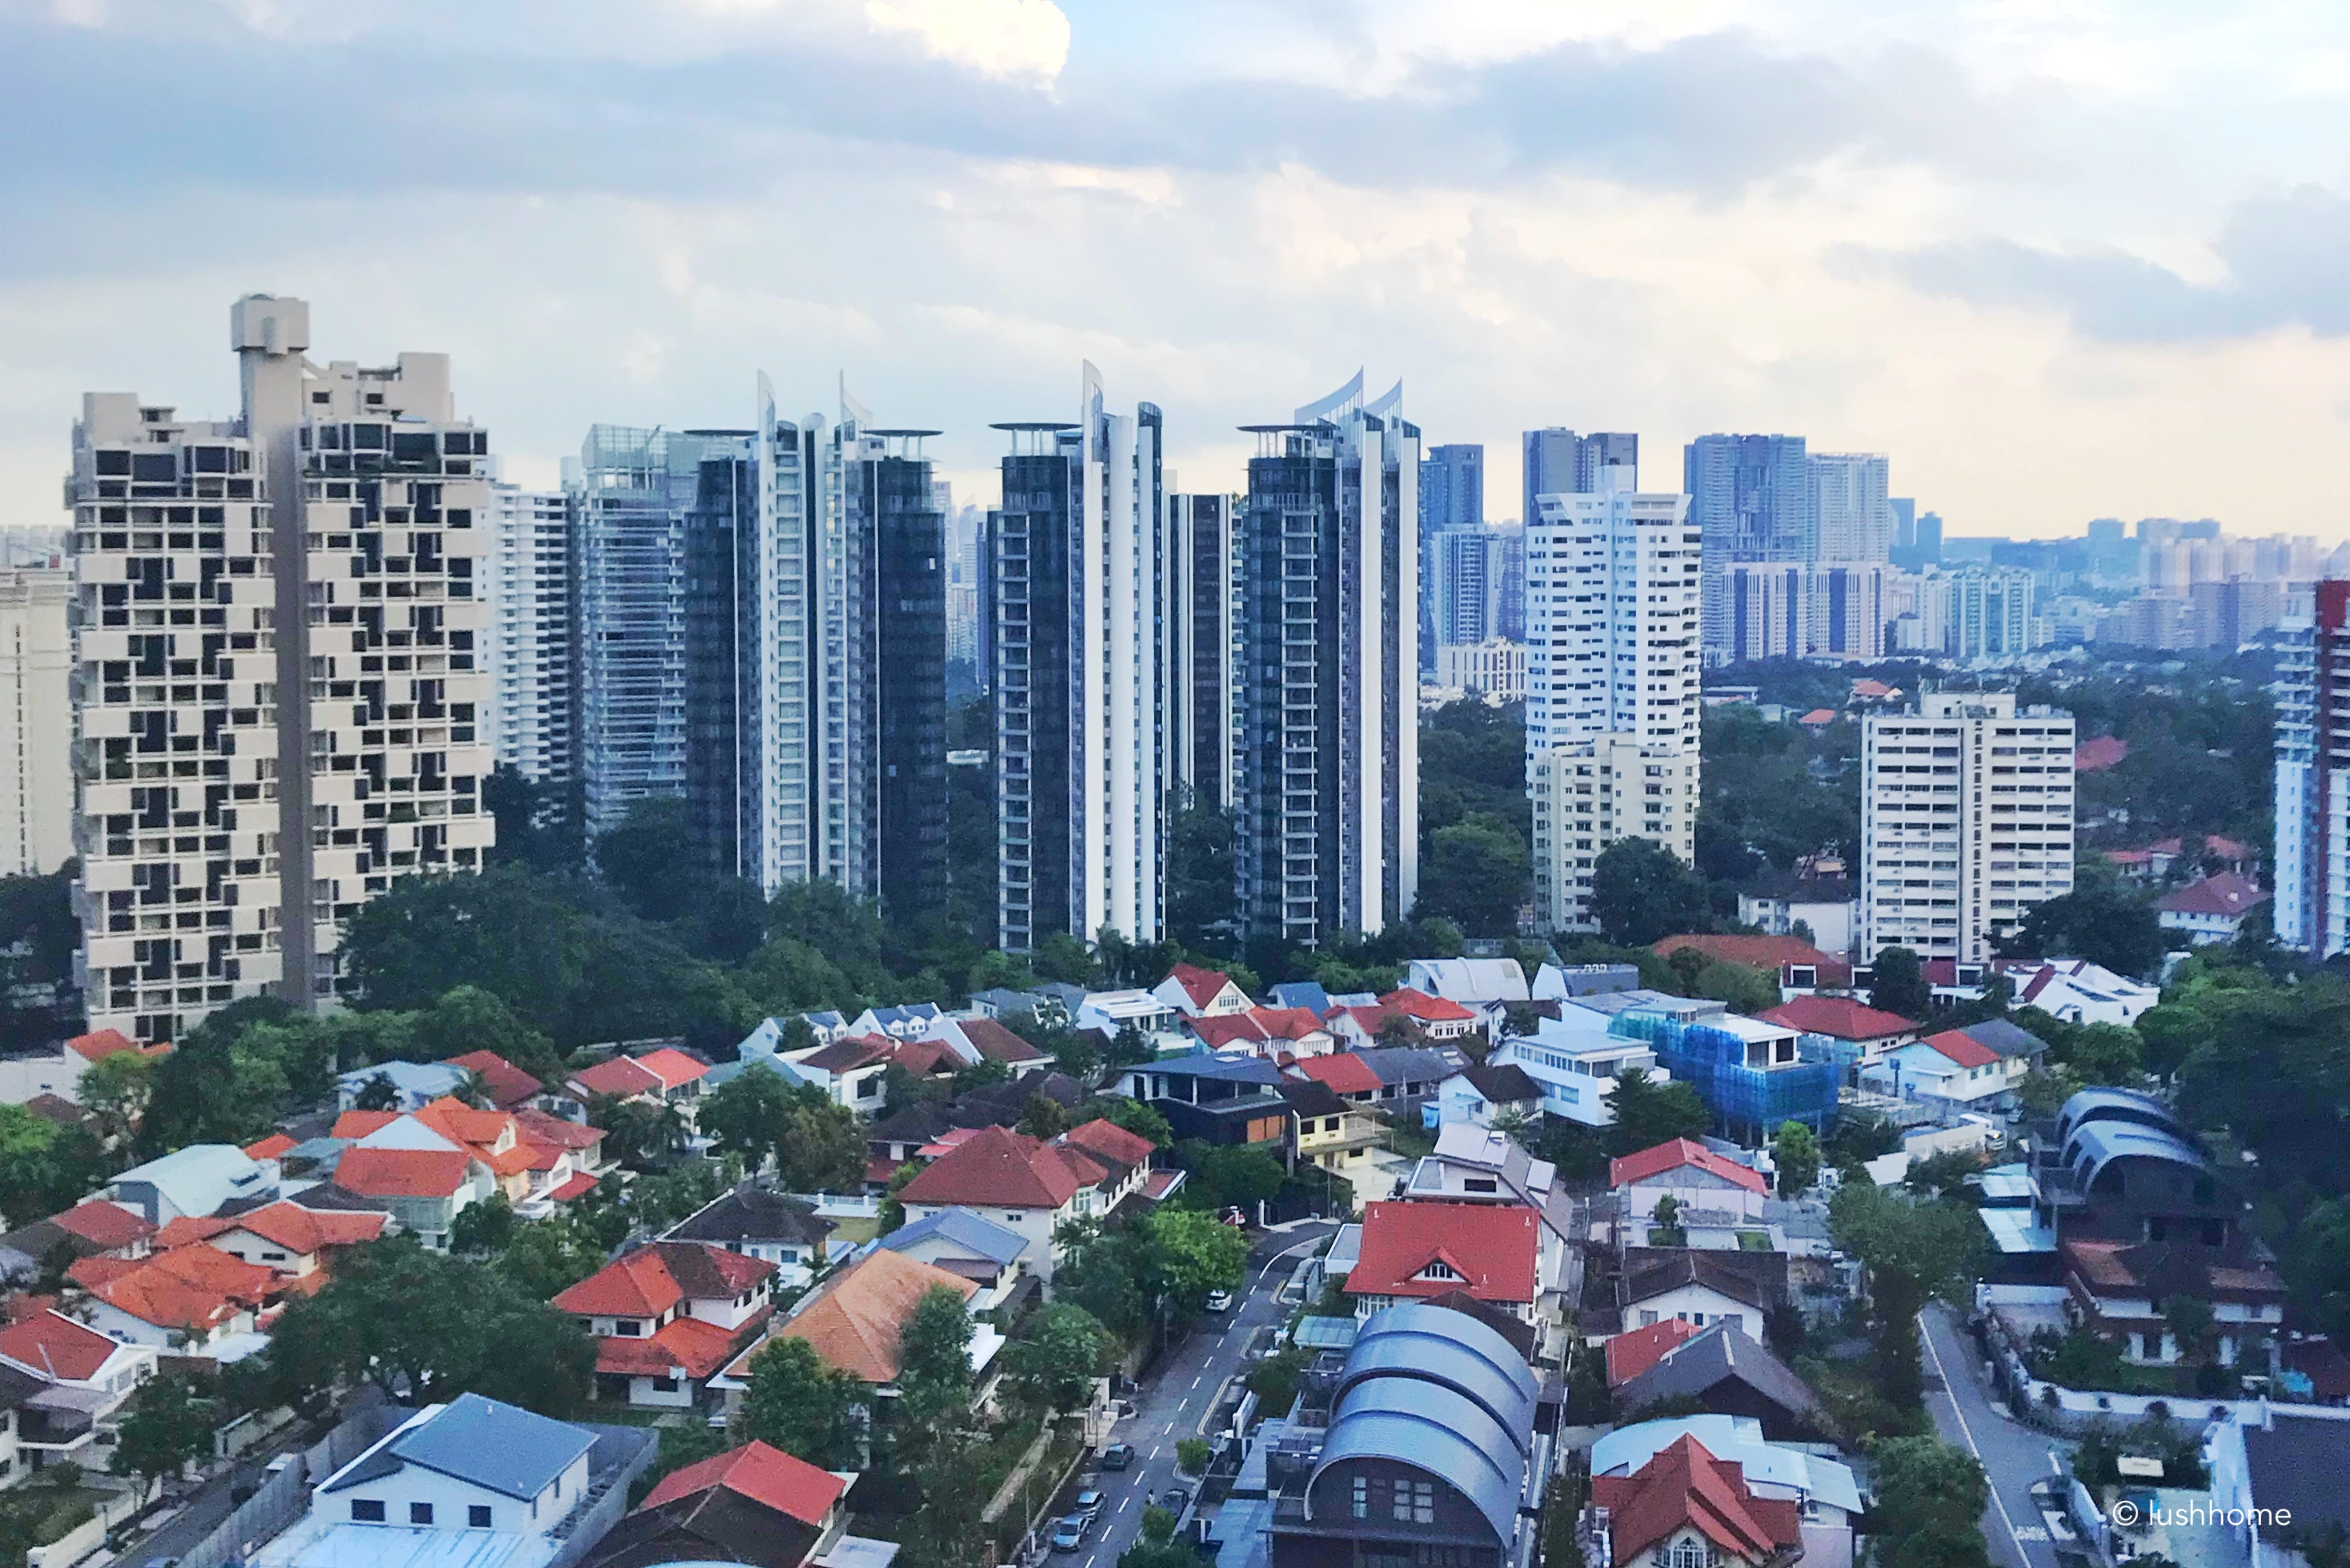 Singapore condo rents fall 0.1% in August from July; HDB rents rise 0.1%: SRX